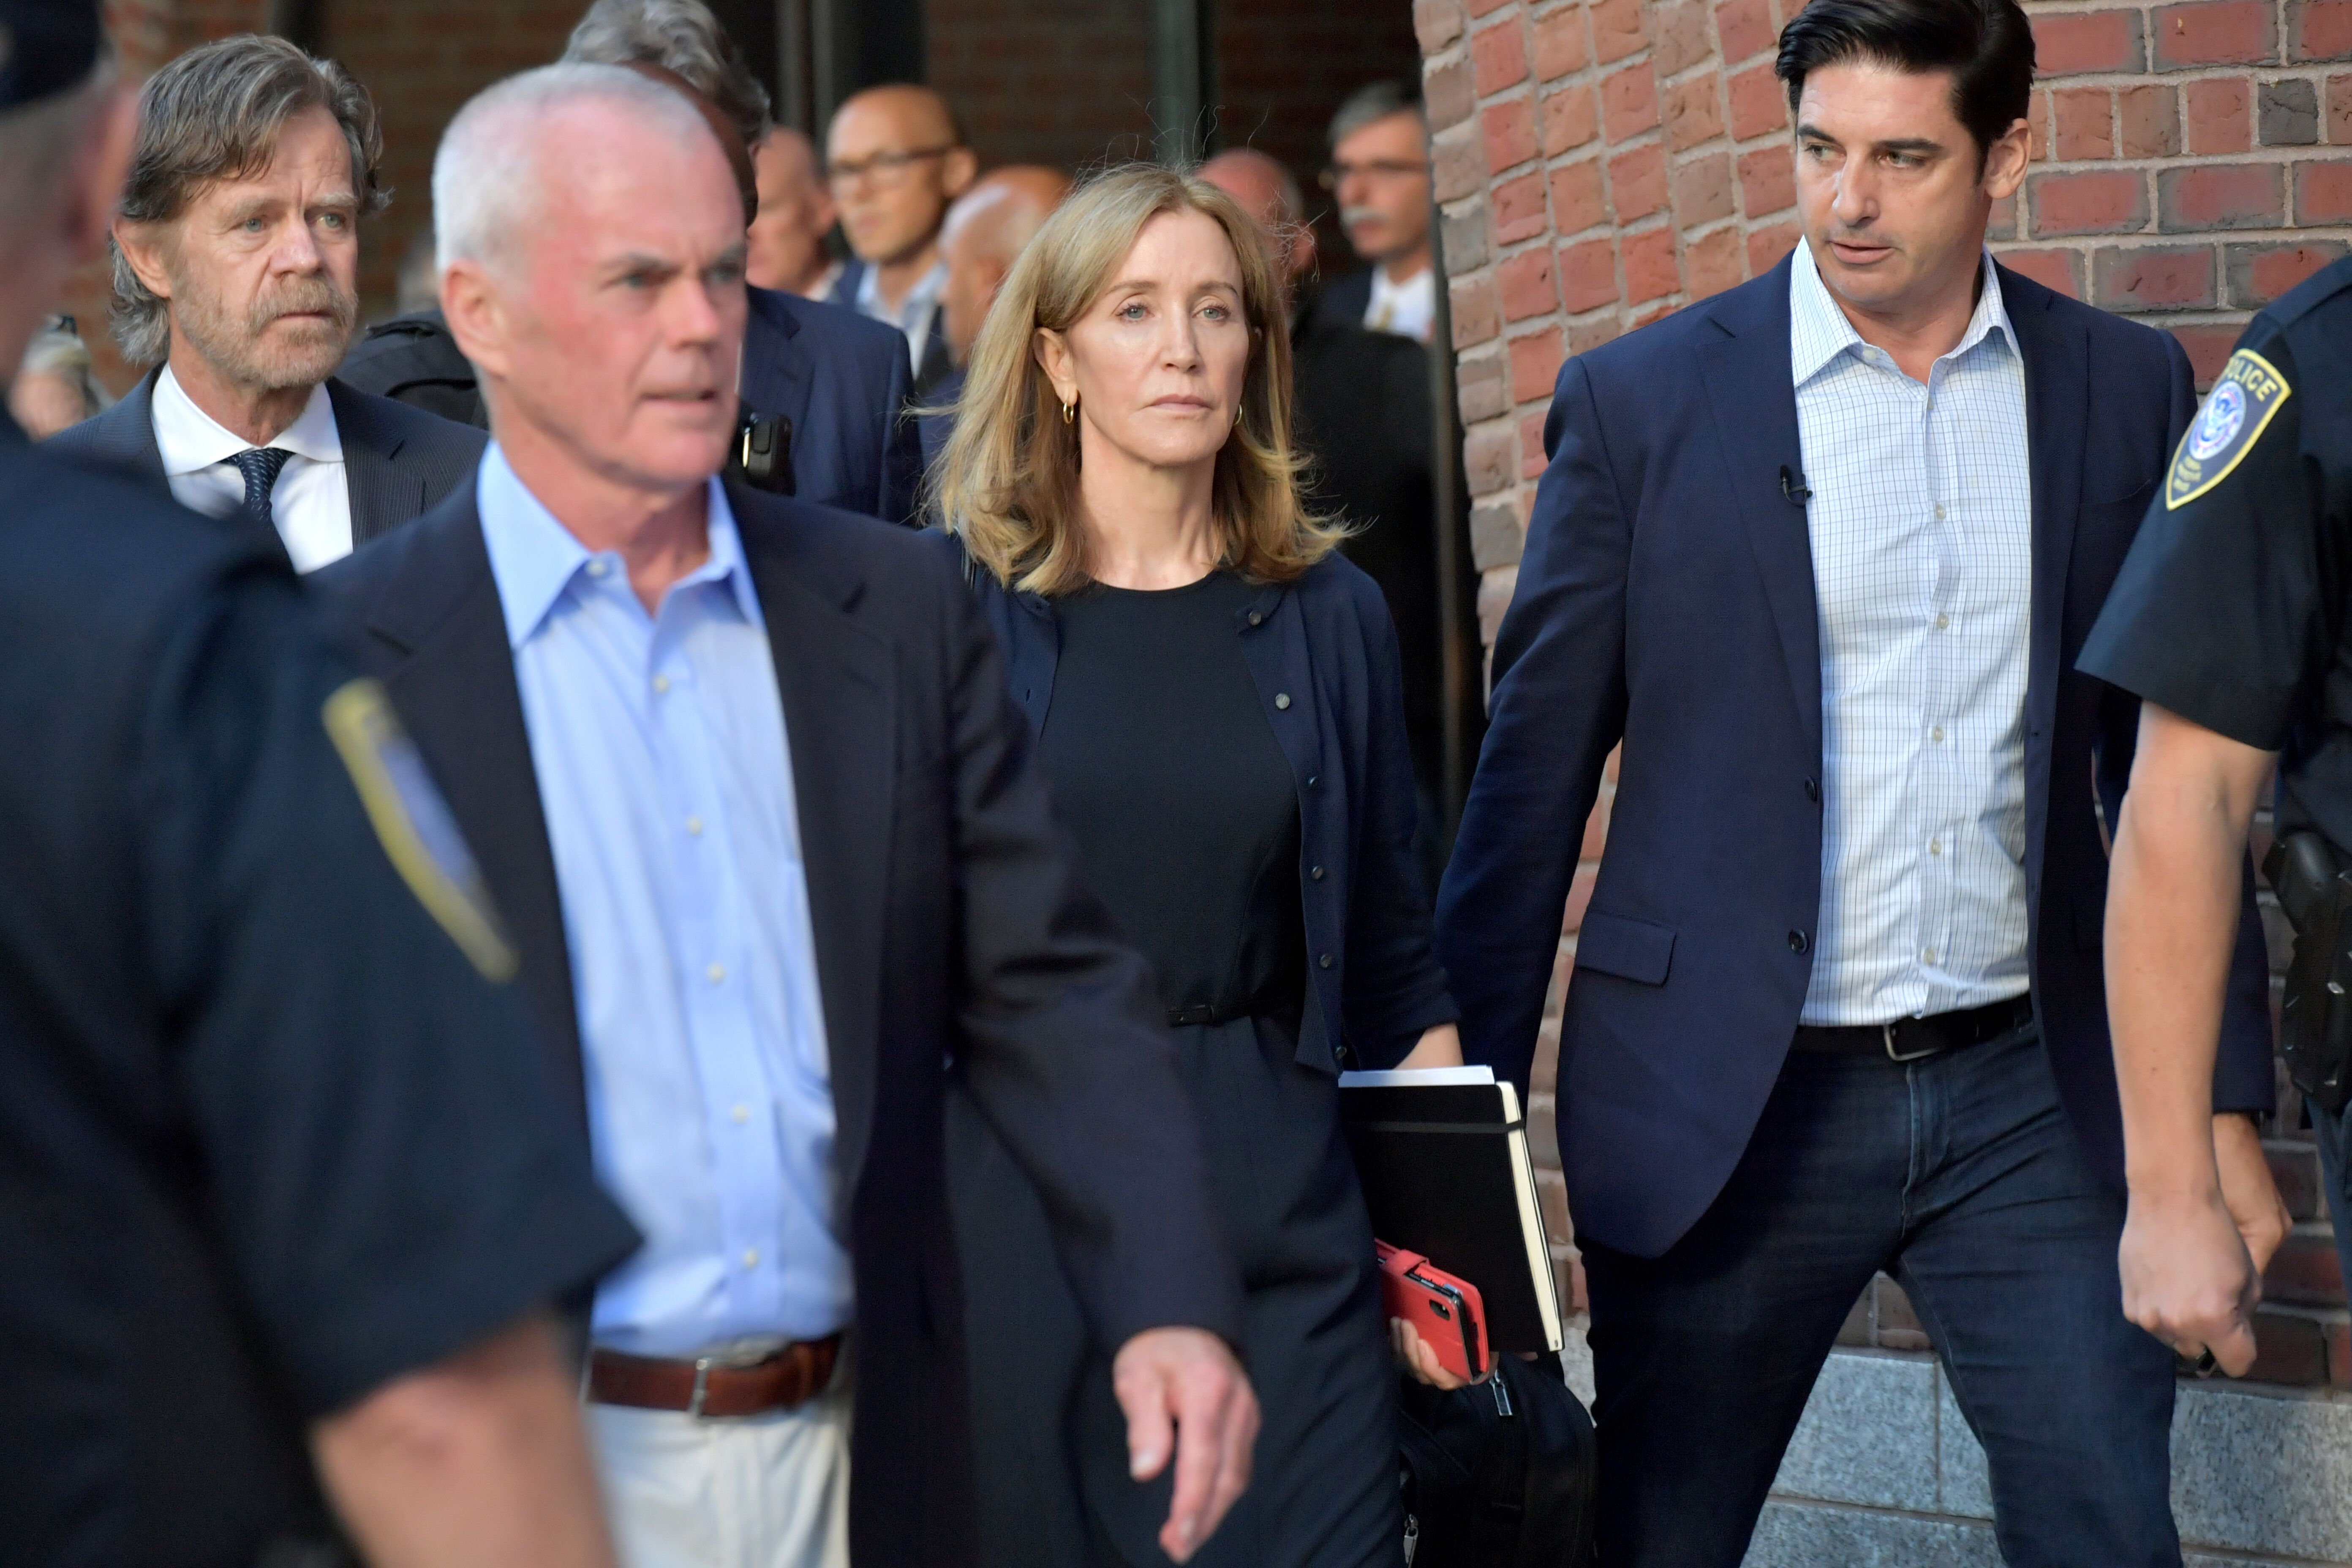 Felicity Huffman outside a Boston federal courthouse with her husband William H. Macy | Photo: Getty Images